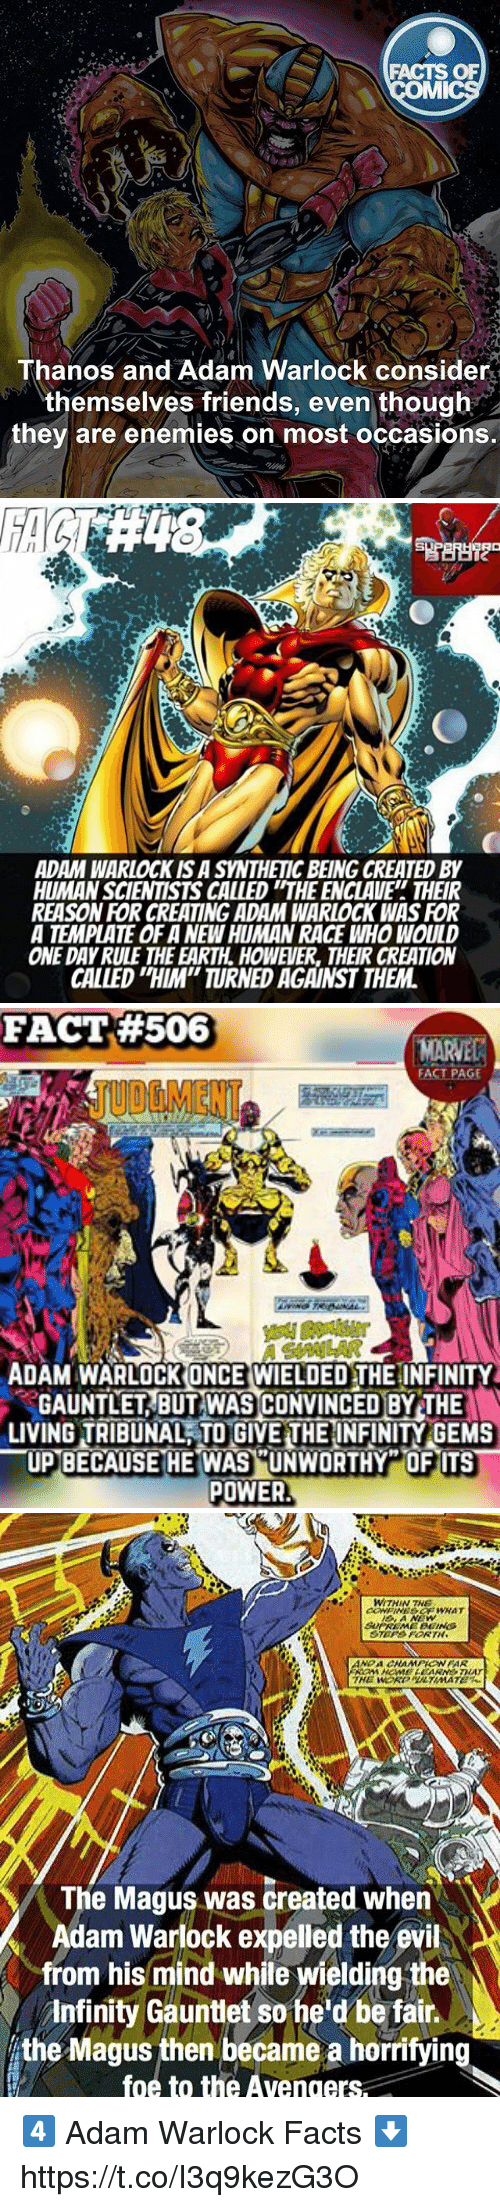 "Facts, Friends, and Memes: FACTS OF  Thanos and Adam Warlock consider  themselves friends, even though  they are enemies on most occasions.   ADAM WARLOCK IS A SYNTHETIC BEING CREATED BY  HUMAN SCIENTISTS CALLED ""THE ENCLAVE THEIR  REASON FOR CREATING ADAM WARLOCK WAS FOR  A TEMPLATE OF A NEWHUMAN RACE WHO WOULD  ONE DAY RULE THE EARTH. HOWEVER, THEIR CREATION  CALLED ""HIM"" TURNED AGAINST THEM   FACT#506  FACT PAGE  JUBGMENT  ADAM WARLOCK ONCE WIELDED THE INFINITY  GAUNTLET BUT WAS CONVINCED BY THE  LIVING TAIBUNAL TO GIVE THE INFINITY GEMS  一UPUNWORTHY "" OF ITS  POWER  BECAUSE HE WAS  爬   WITHIN THE  The Magus was created when  Adam Warlock expelled the evil  from his mind while wielding the  Infinity Gauntlet so he'd be fair..  the Magus then became a horrifying  foe to the Avengers 4️⃣ Adam Warlock Facts ⬇️ https://t.co/I3q9kezG3O"